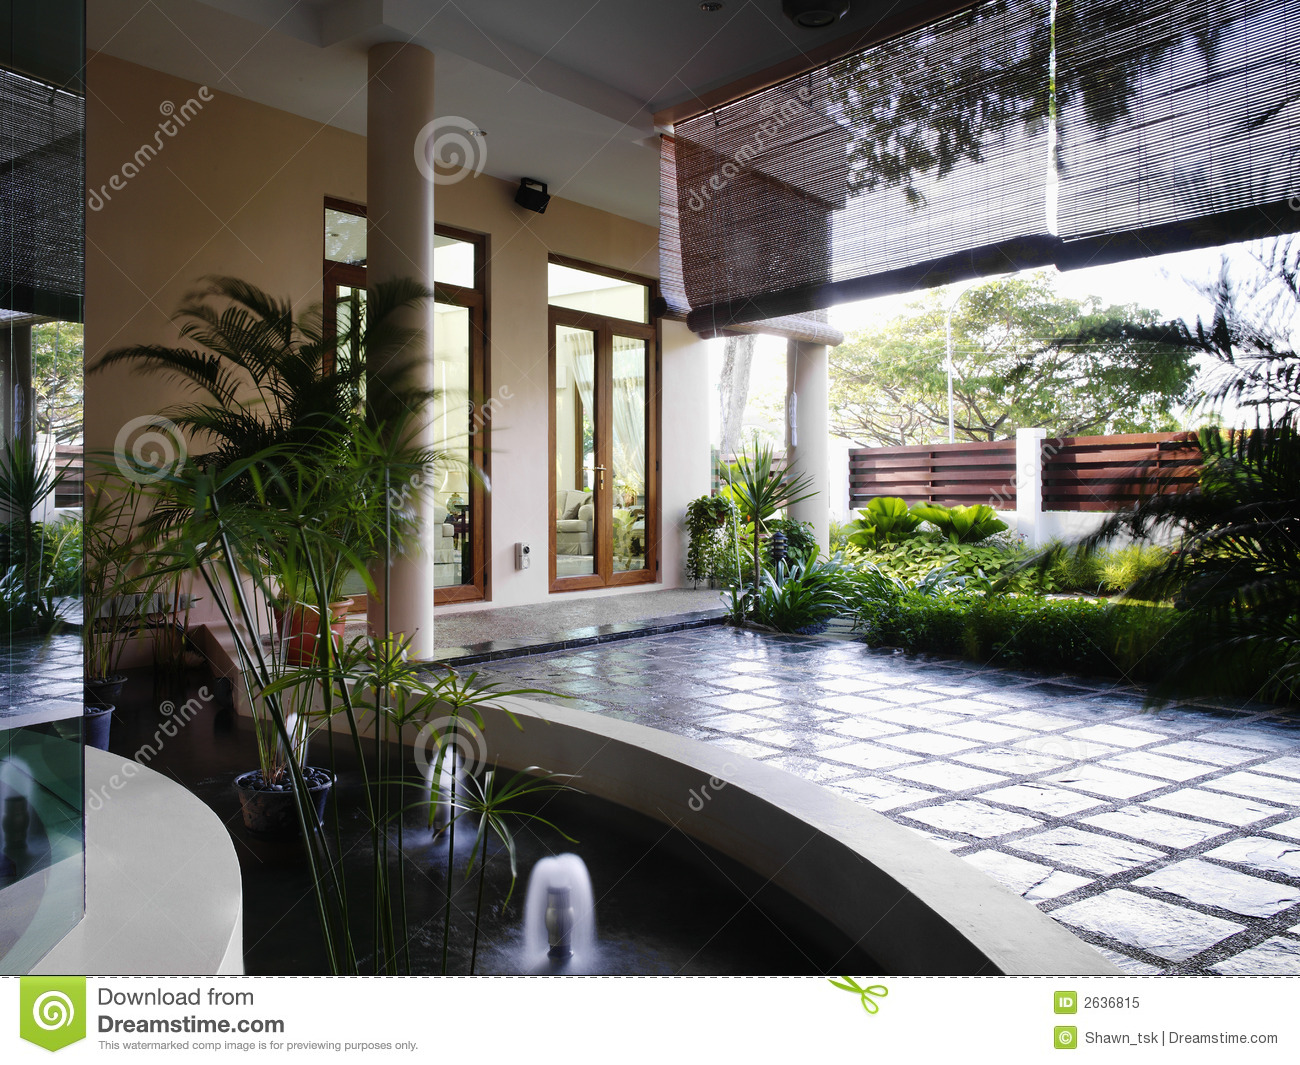 Interior design landscape royalty free stock photo for Manapat interior landscape designs